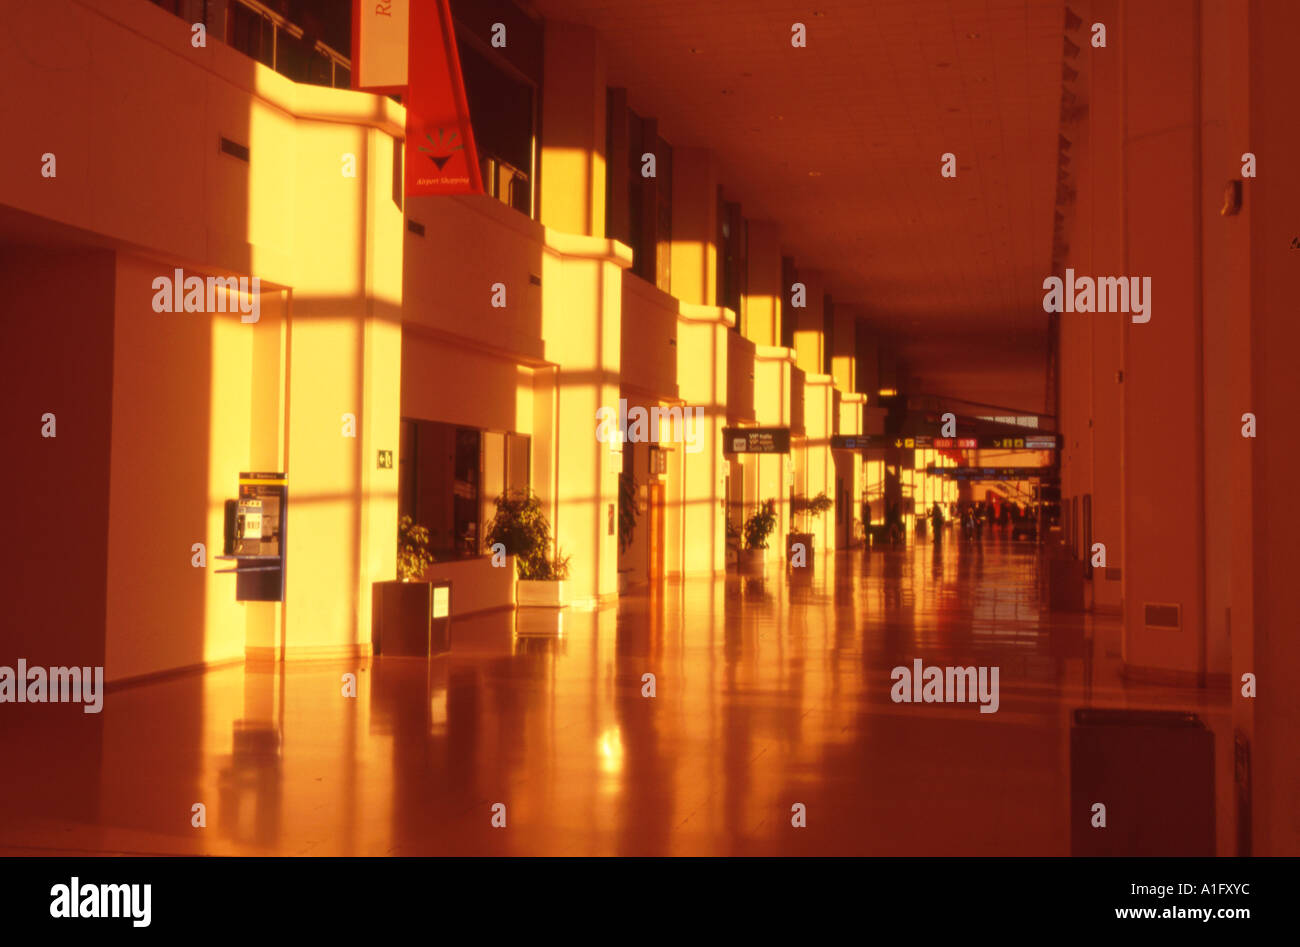 Malaga airport beyond customs and check in - Stock Image